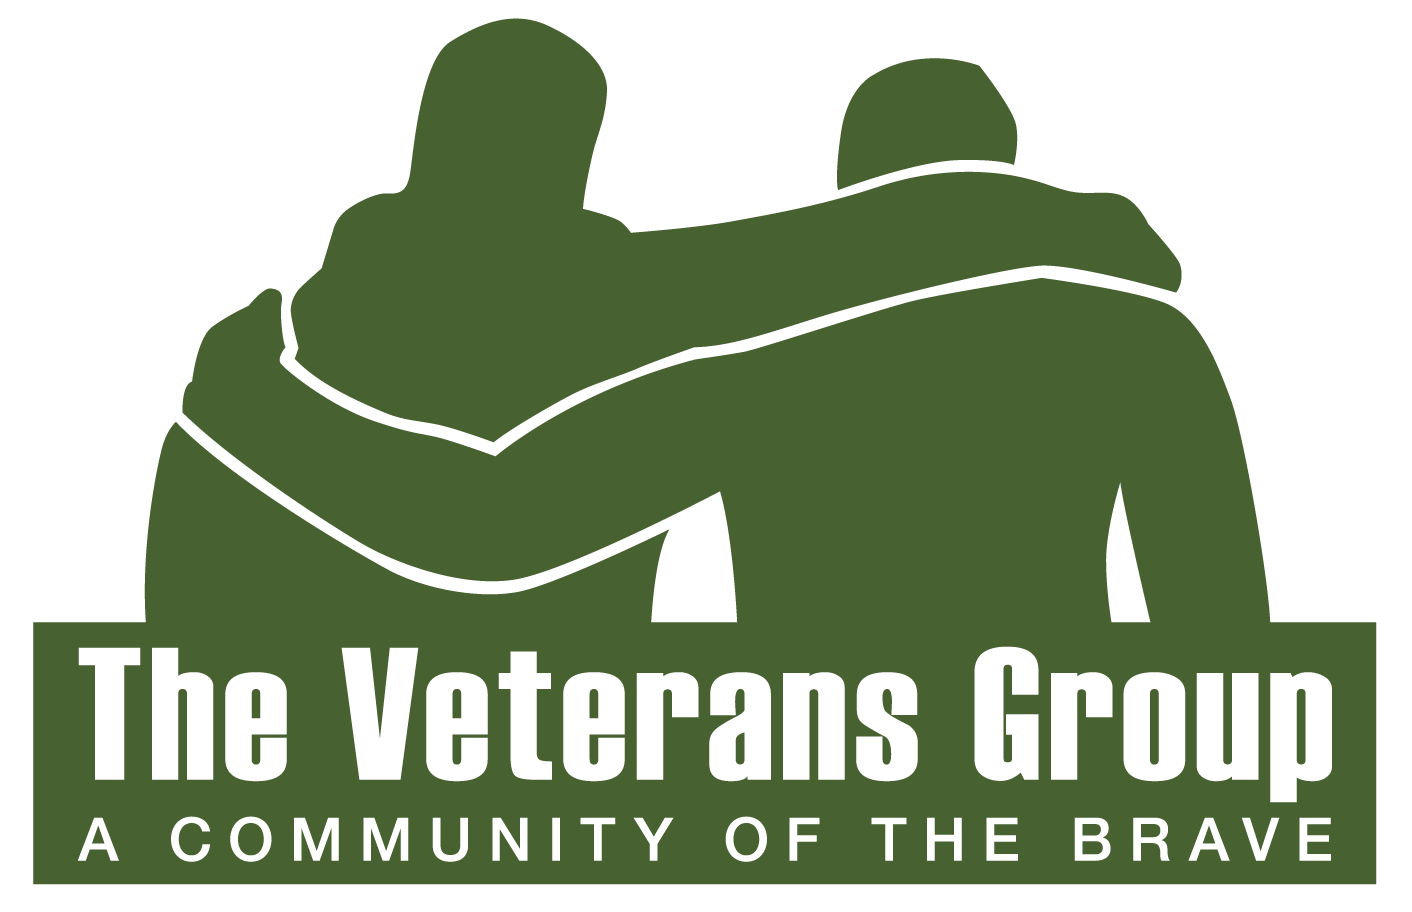 the veterans group